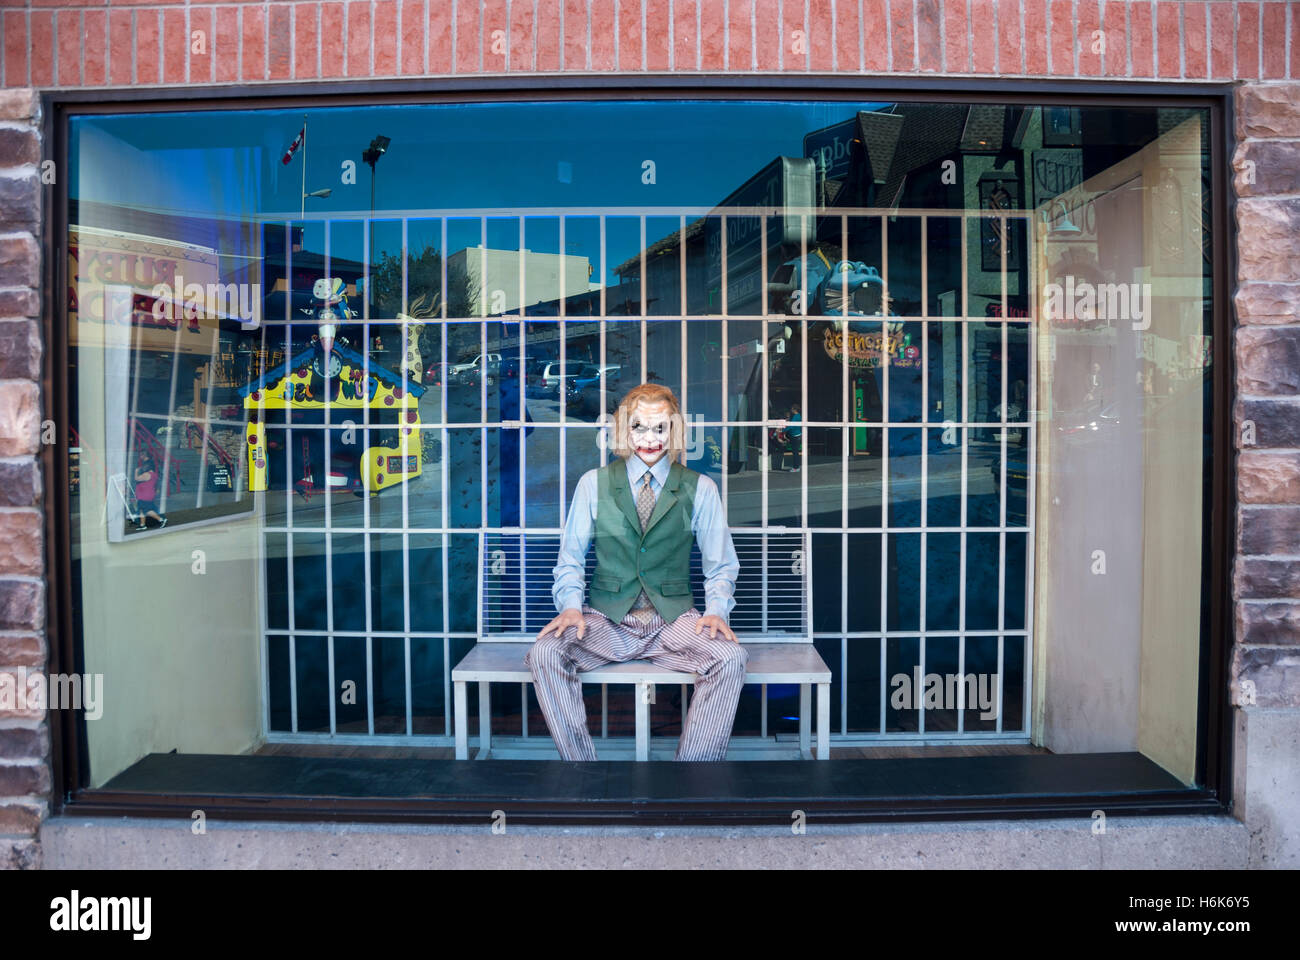 A wax model of Heath Ledger as the Joker in a street window display at the Movieland wax museum in Niagara Falls - Stock Image